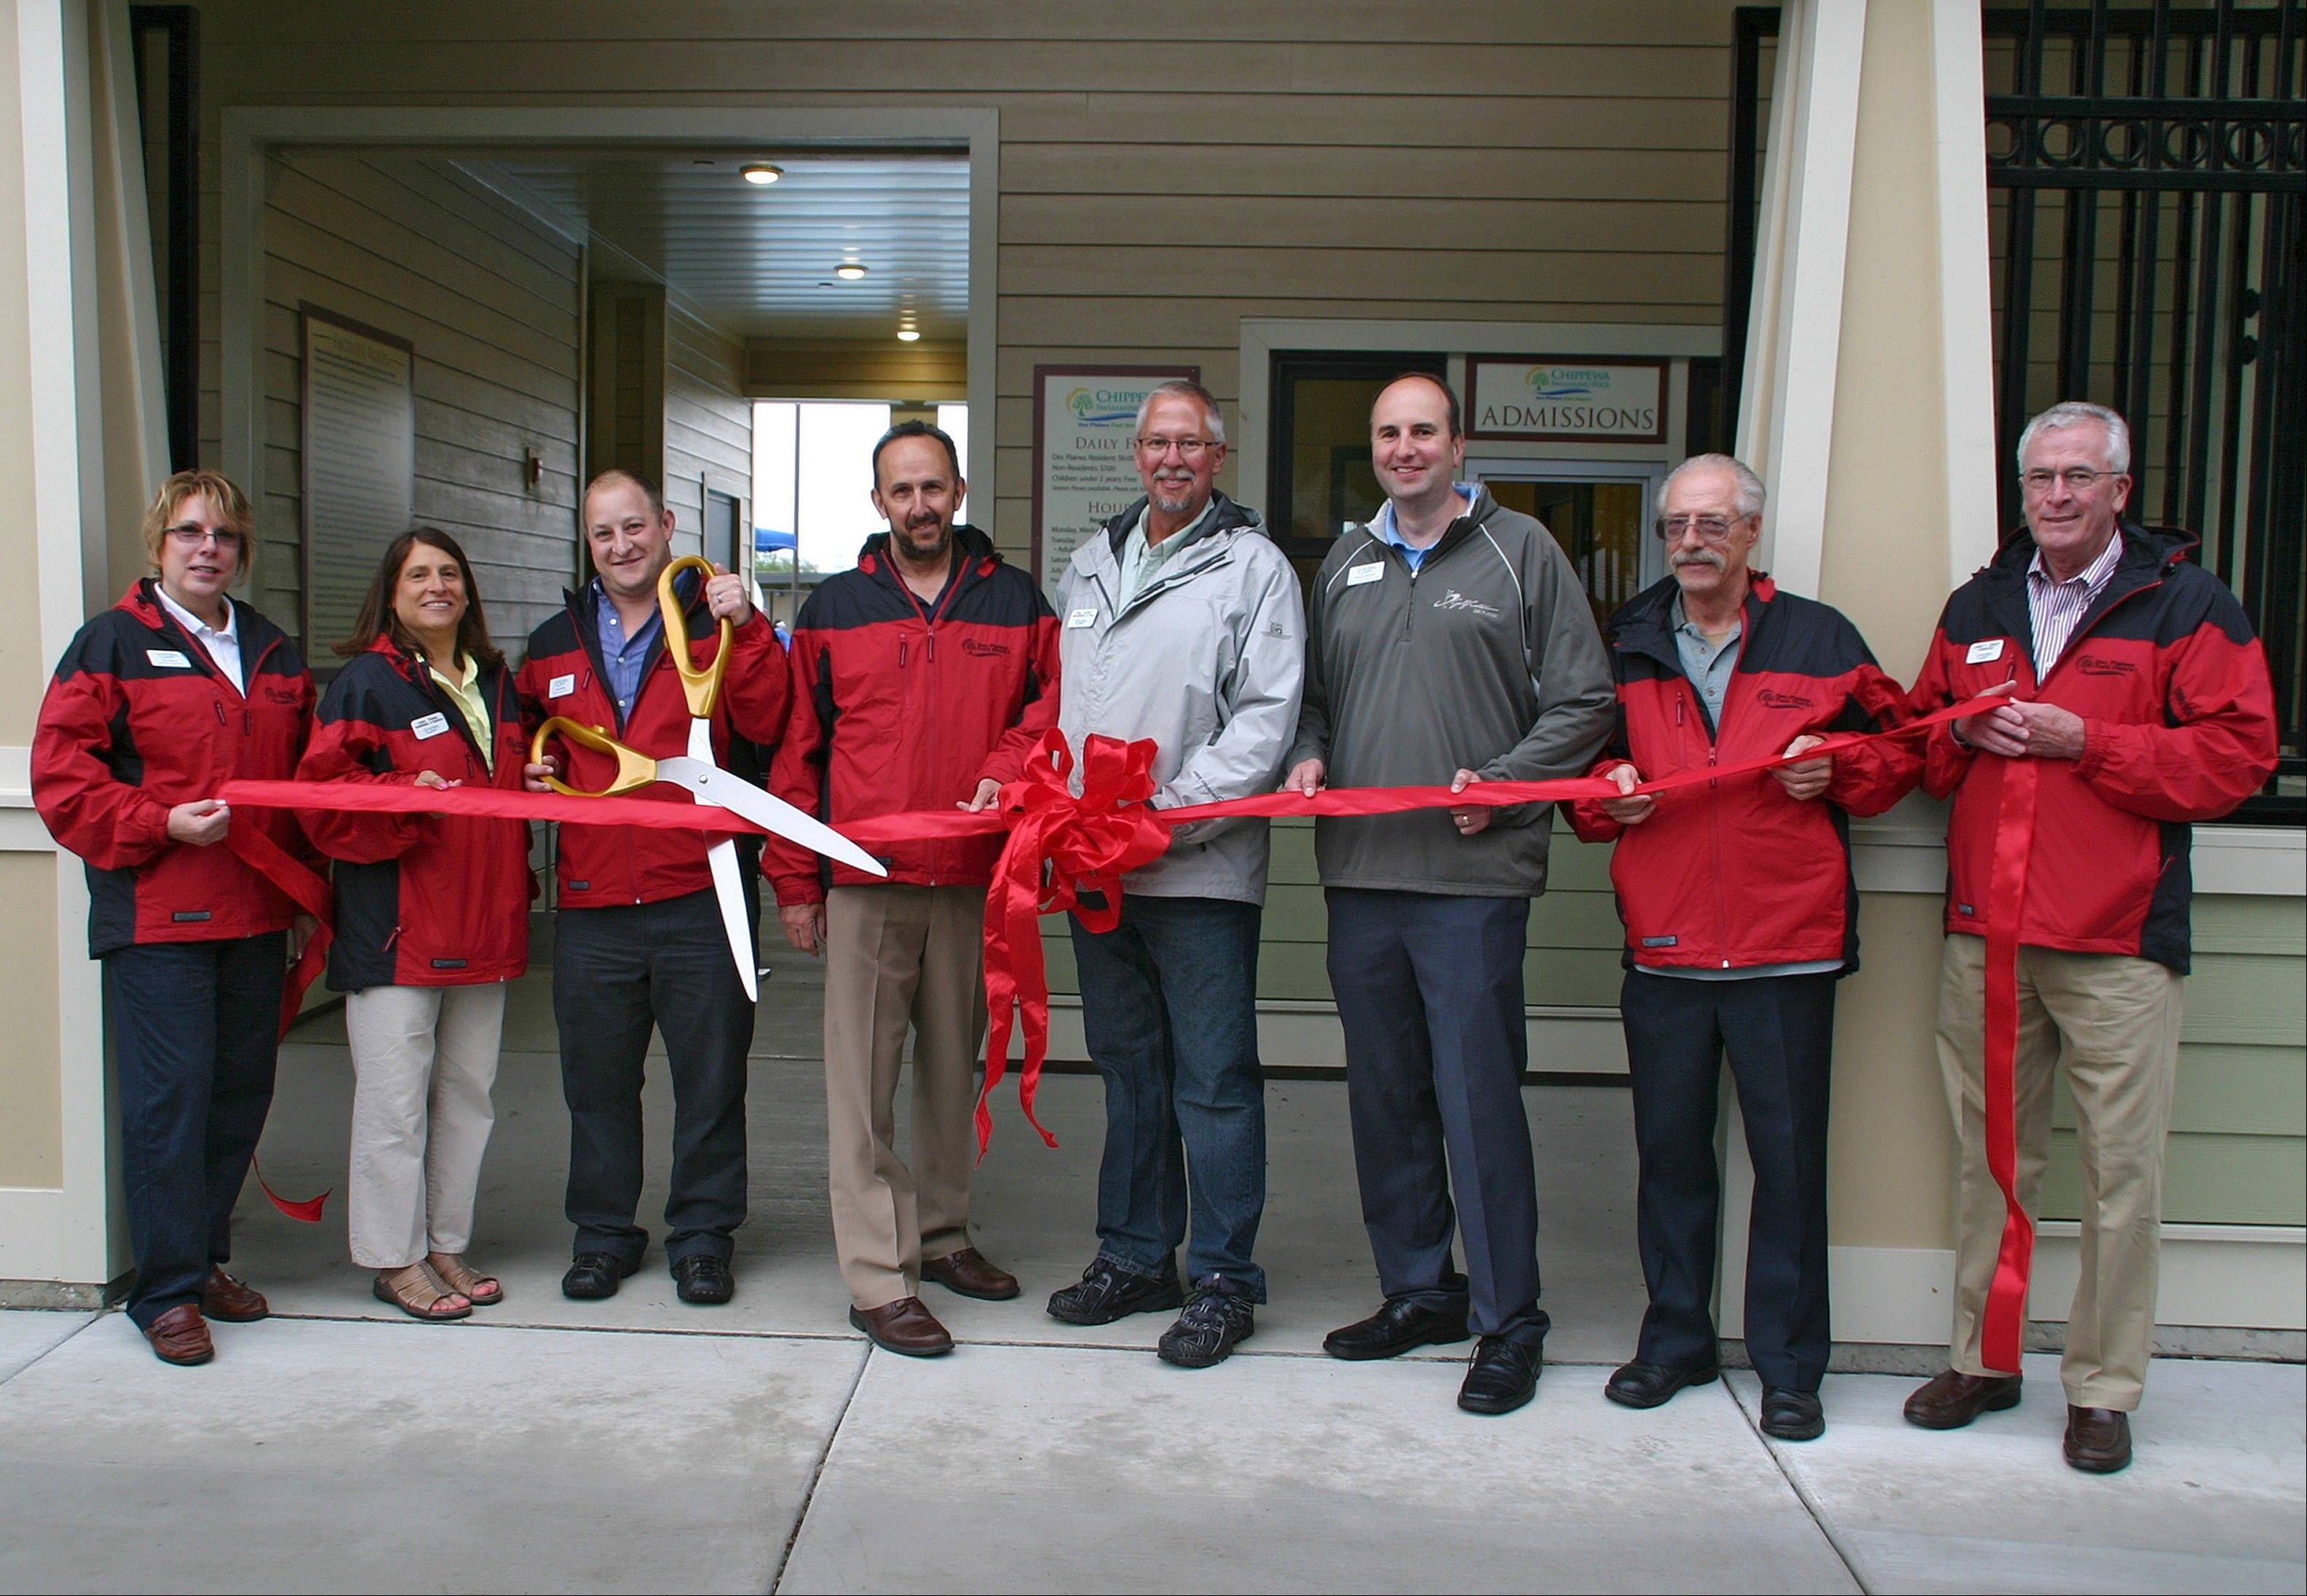 Pictured at the grand opening of Chippewa Pool, from left, are: Park Board Commissioner Jana Haas; Superintendent of Recreation Linda Traina; Park Board President Joe Weber; Executive Director John Hecker; Superintendent of Parks and Planning Paul Cathey; Superintendent of Business and Golf Operations Don Miletic; Park Board Commissioner William J. Yates; and Park Board Commissioner James F. Grady.